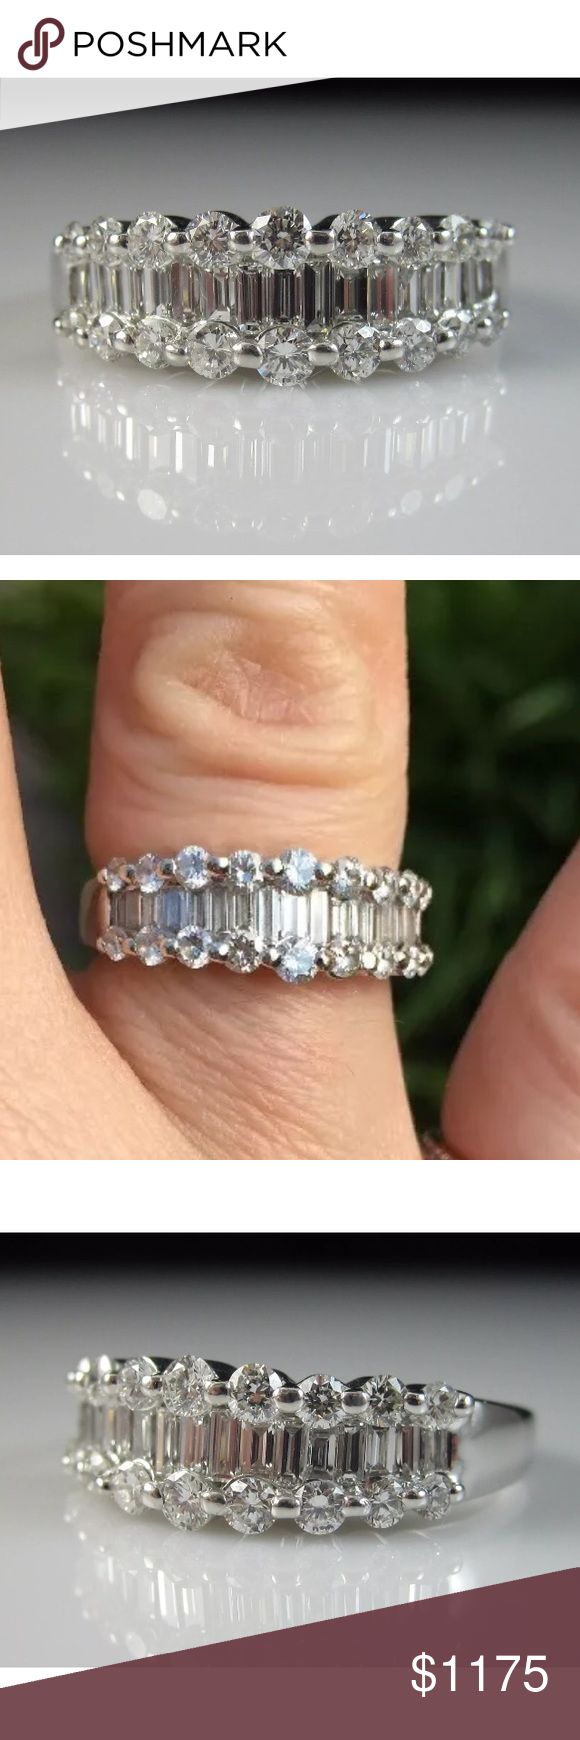 2 carat 14k white gold high quality diamond ring 2 carat 14k white gold high quality diamond ring! Retail over $4000!!! Jewelry Rings